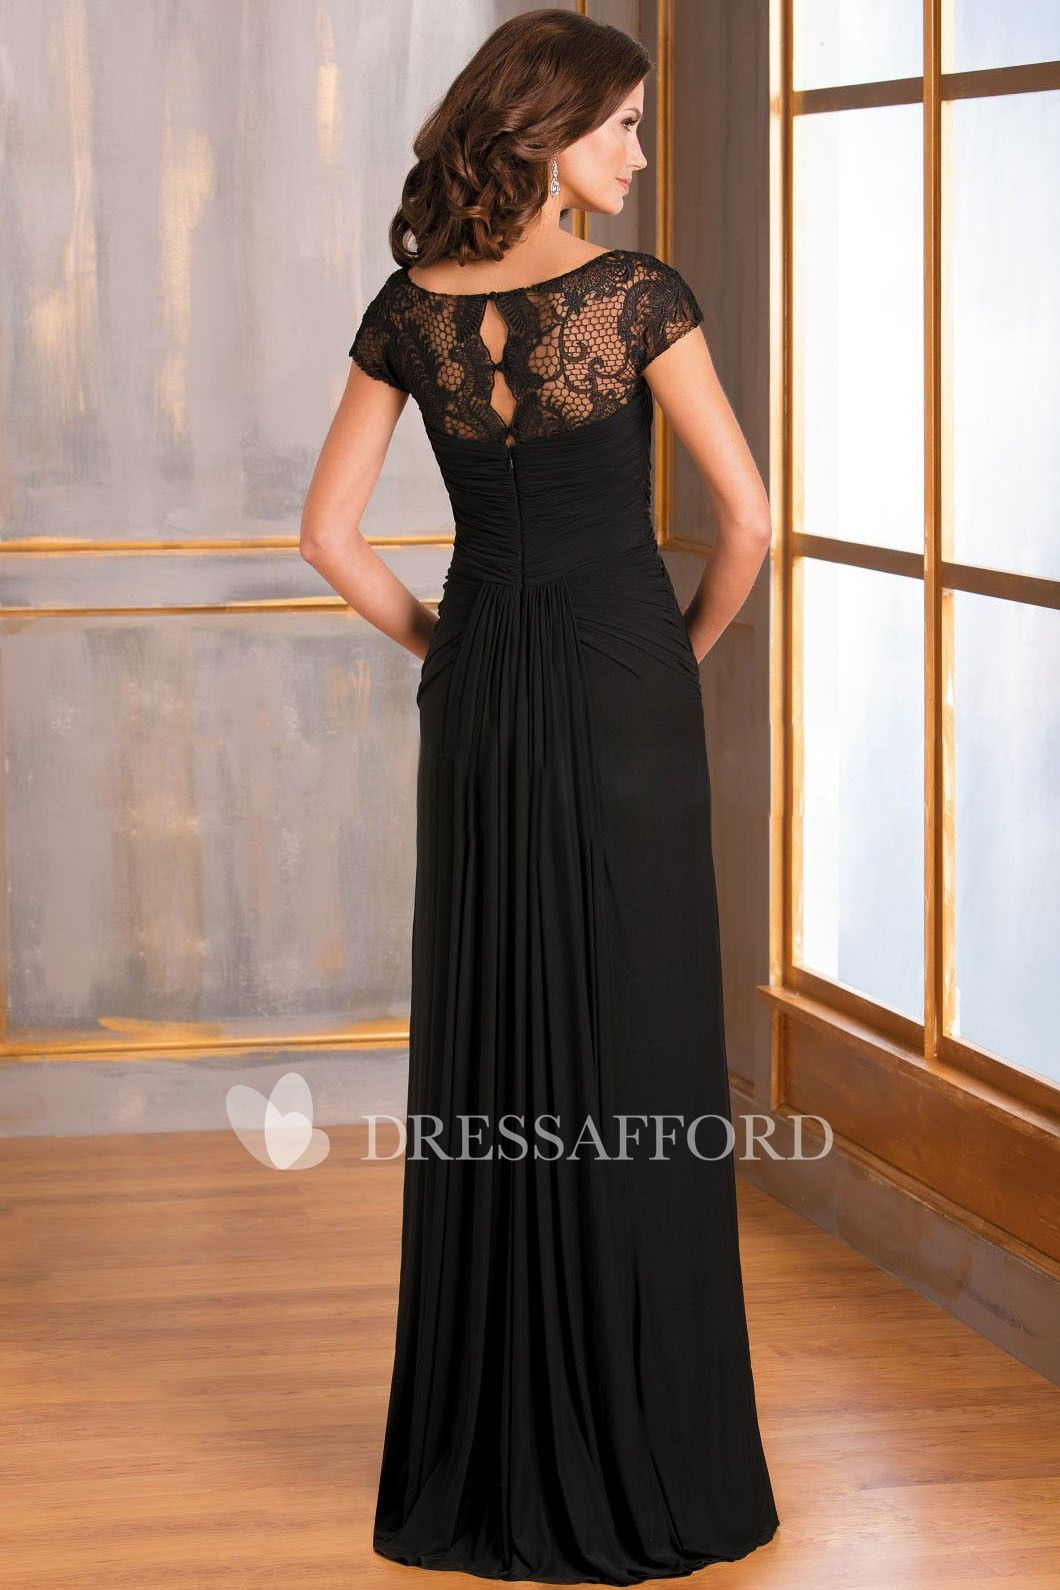 2539d3c6d1 Scoop-neck Chiffon Lace Dress With central draping